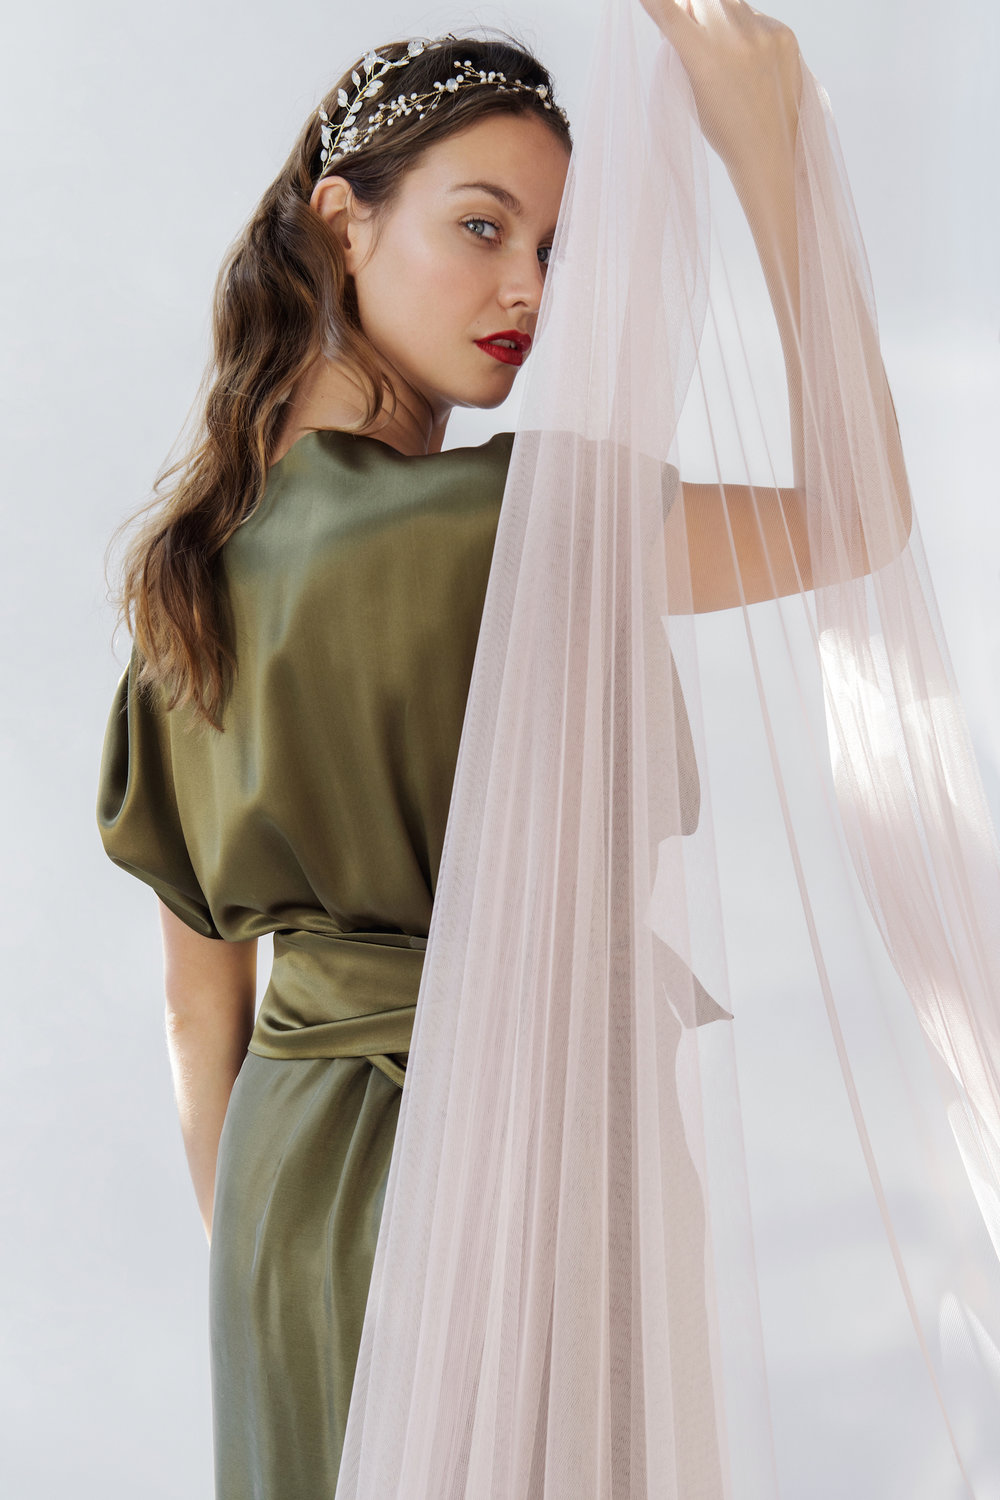 Marie - Pure and simple - Nile green single-length dress in tulle silk with boat neck, kimono sleeve, wrap effect, and large split at the front - can be for a bride who chooses simplicity, as well as for the mother of the bride, or the bridesmaids.